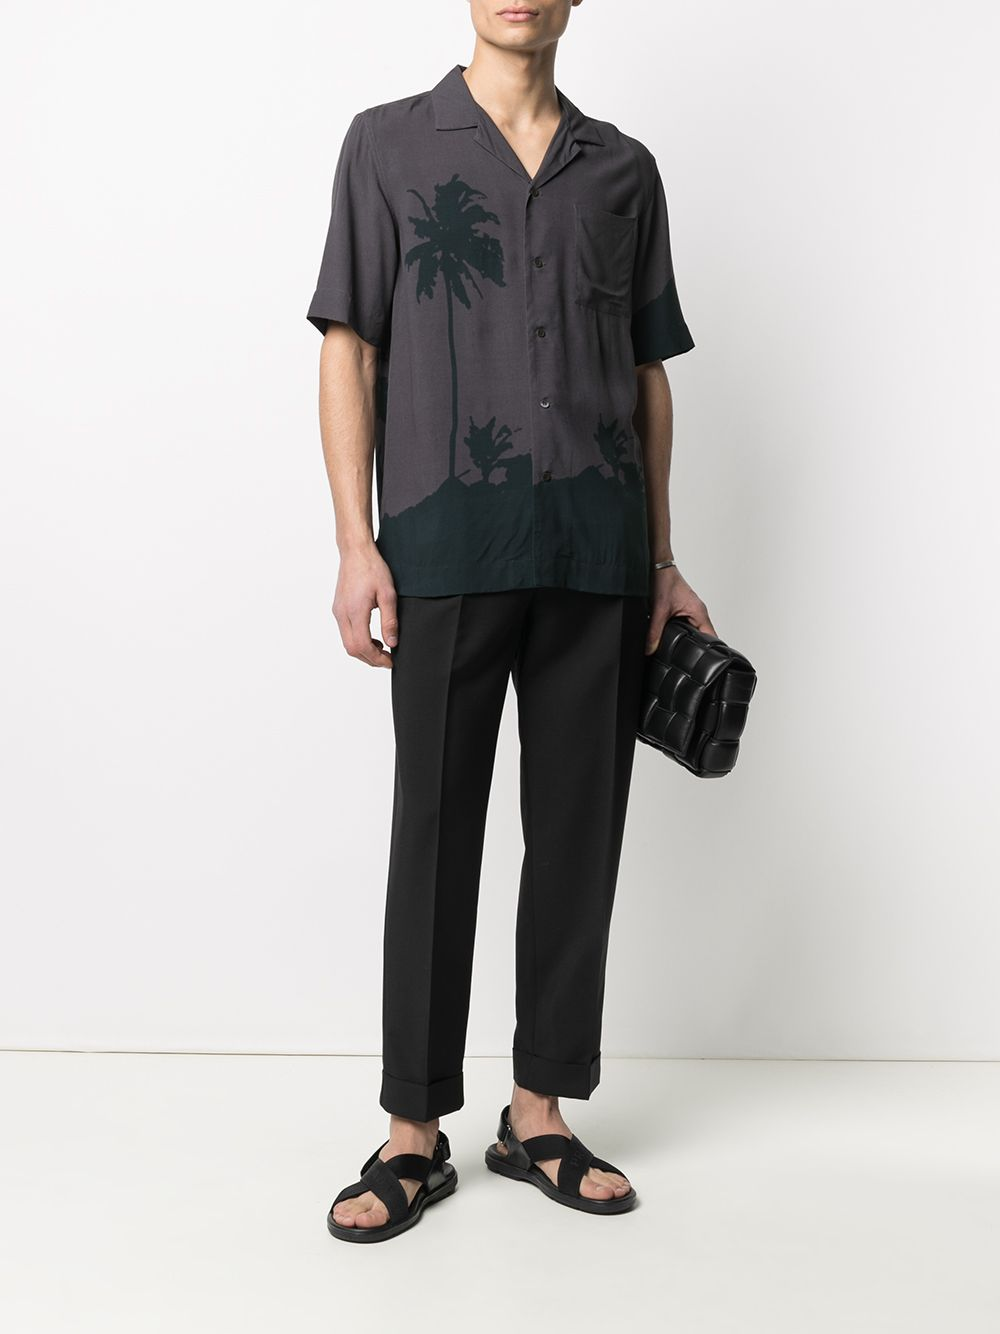 Dries Van Noten camicia con stampa uomo DRIES VAN NOTEN | Camicie | CARLTONE2003